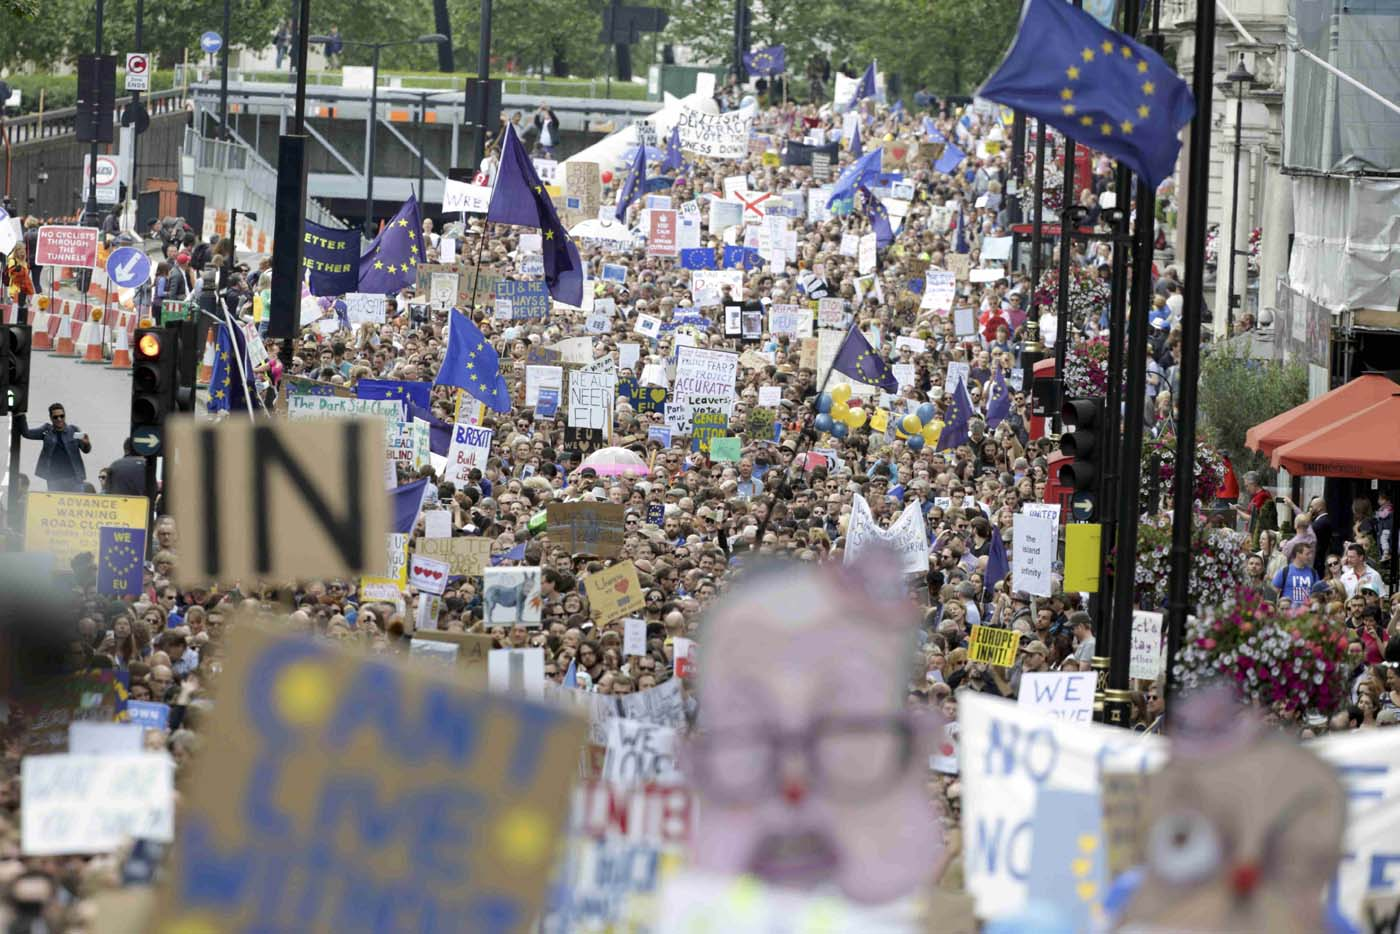 People hold banners during a demonstration against Britain's decision to leave the European Union, in central London, Britain July 2, 2016. Britain voted to leave the European Union in the EU Brexit referendum. REUTERS/Paul Hackett